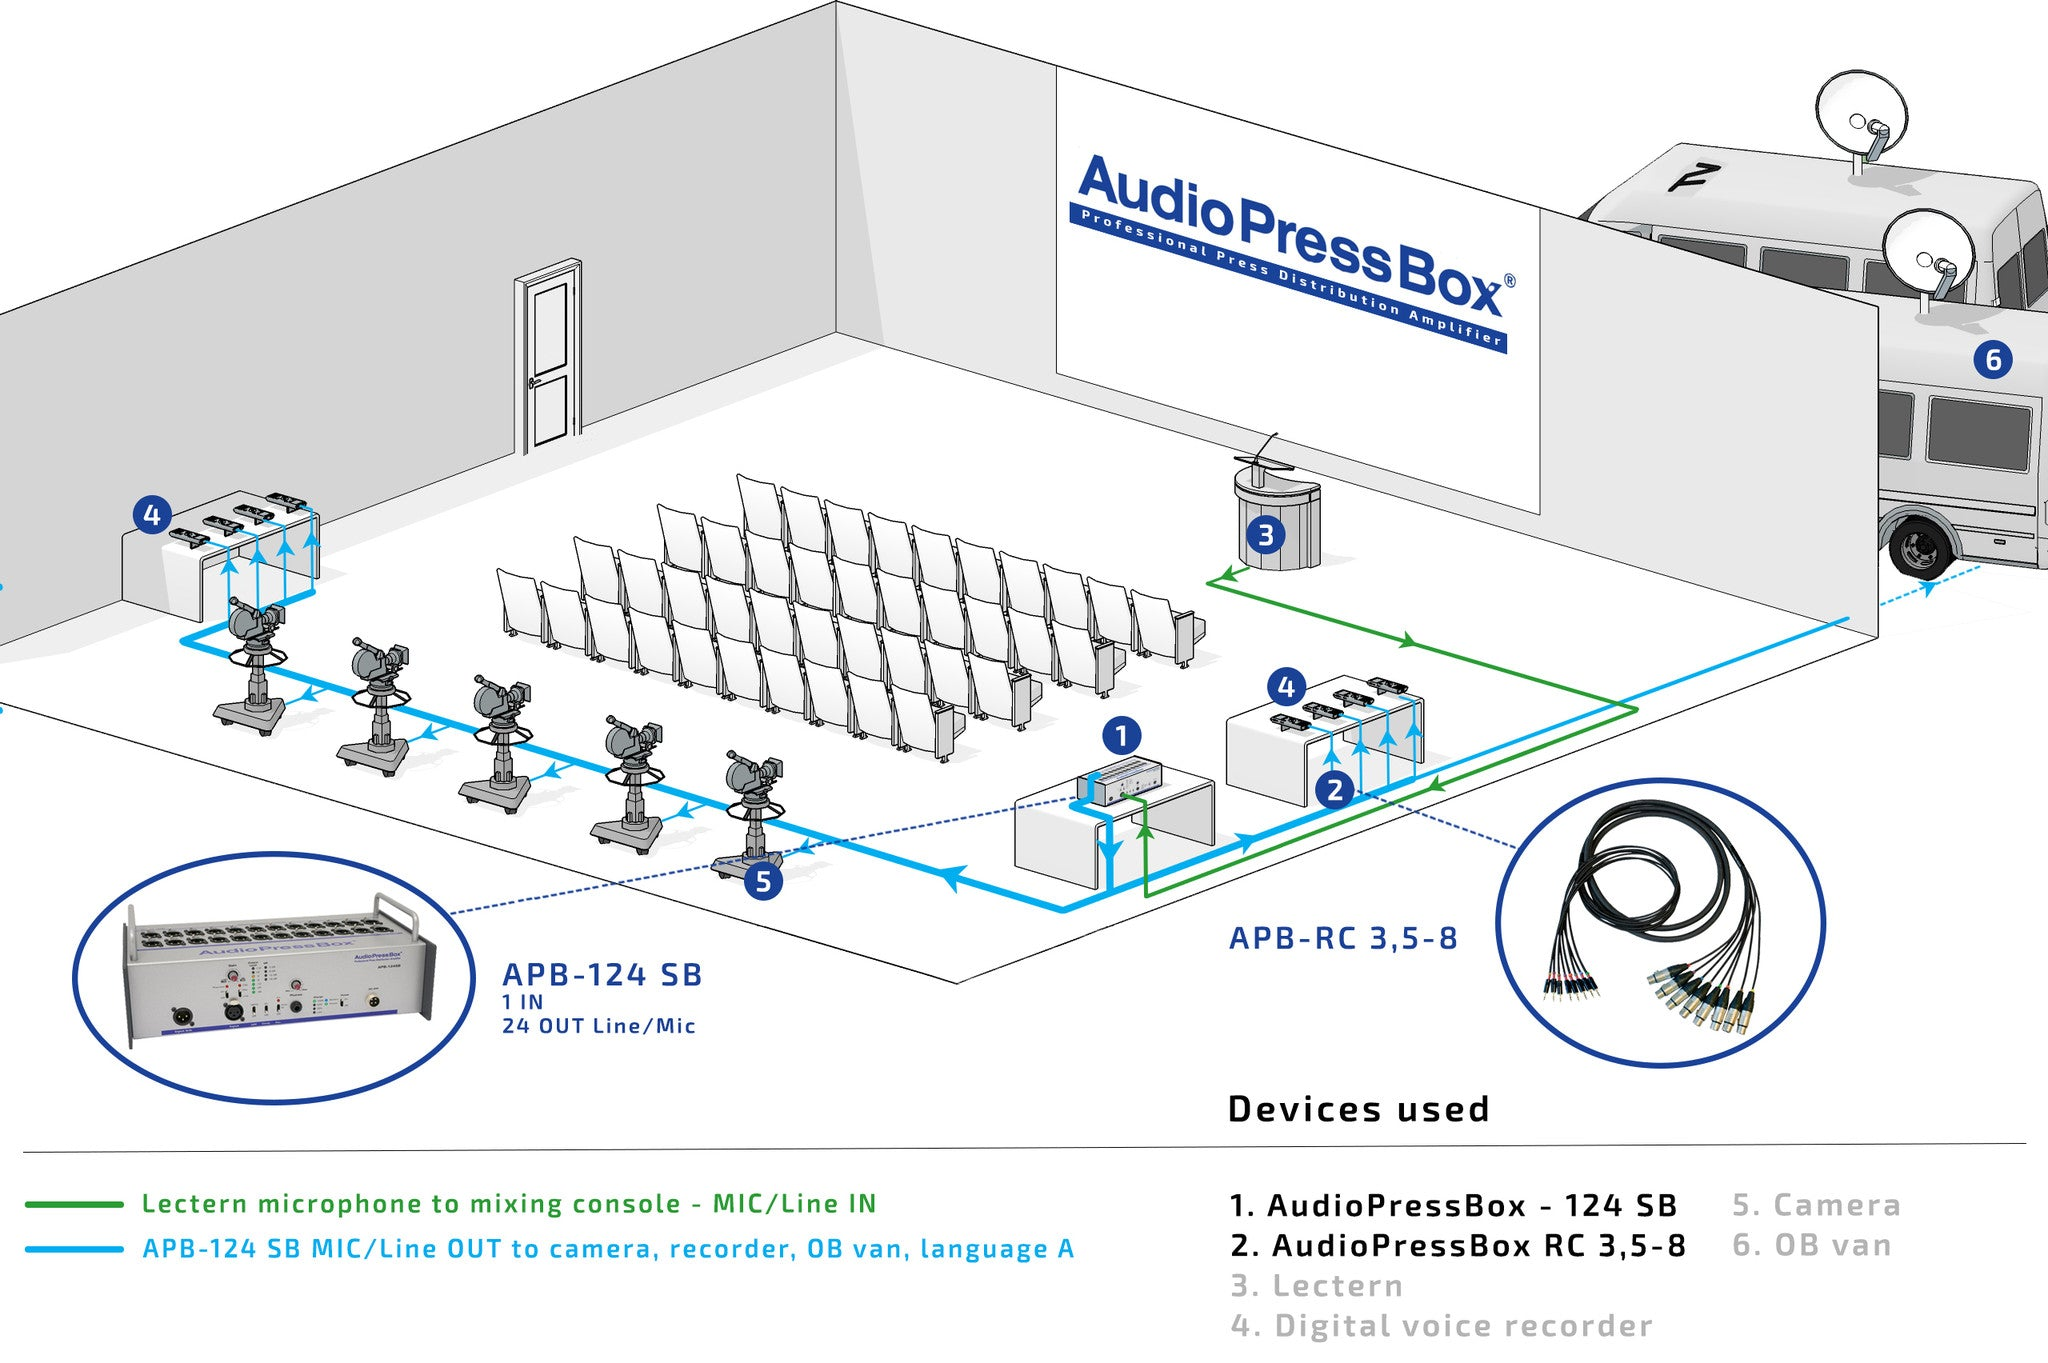 AudioPressBox, Mult Box, PressBox, Mult Box, Press Patch Box, Pressesplitter,APB-448 SB